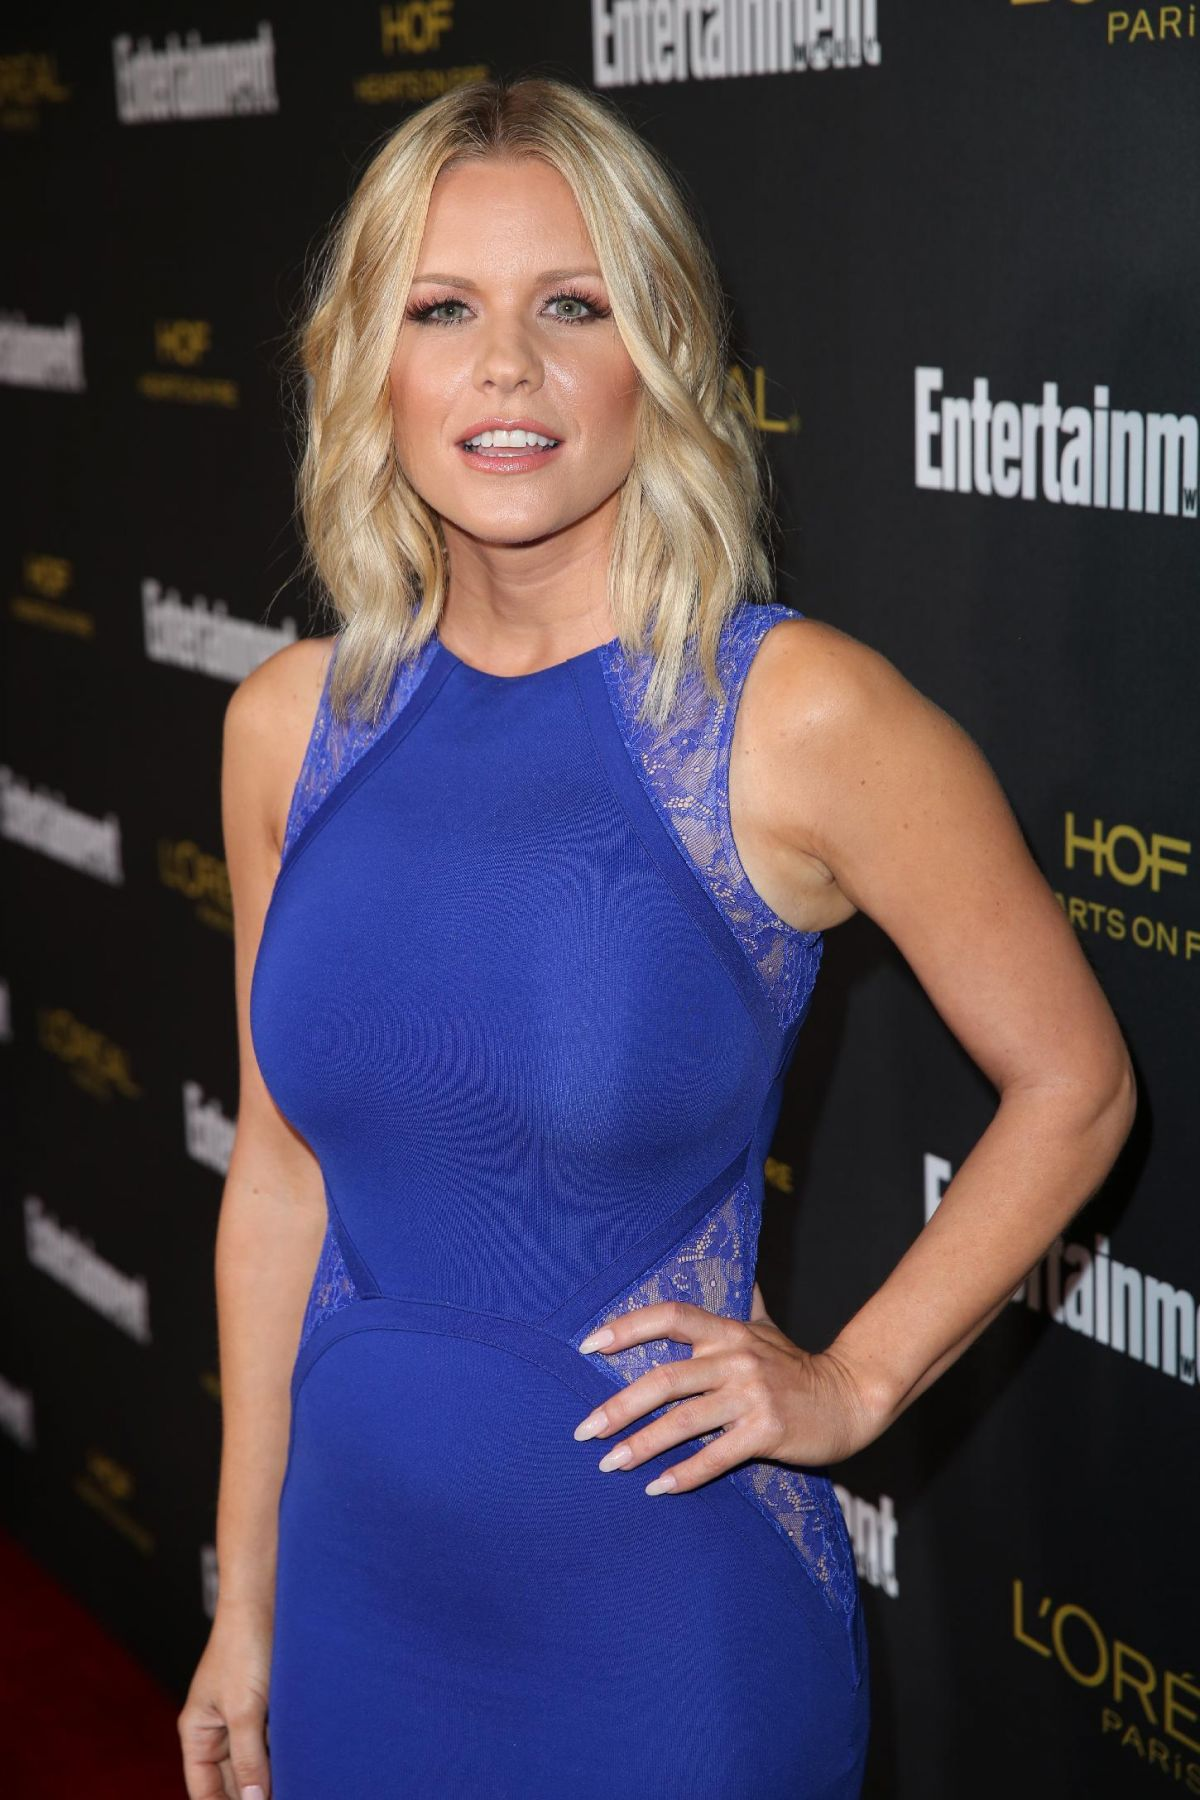 CARRIE KEAGAN at Entertainment Weekly's Pre-emmy Party